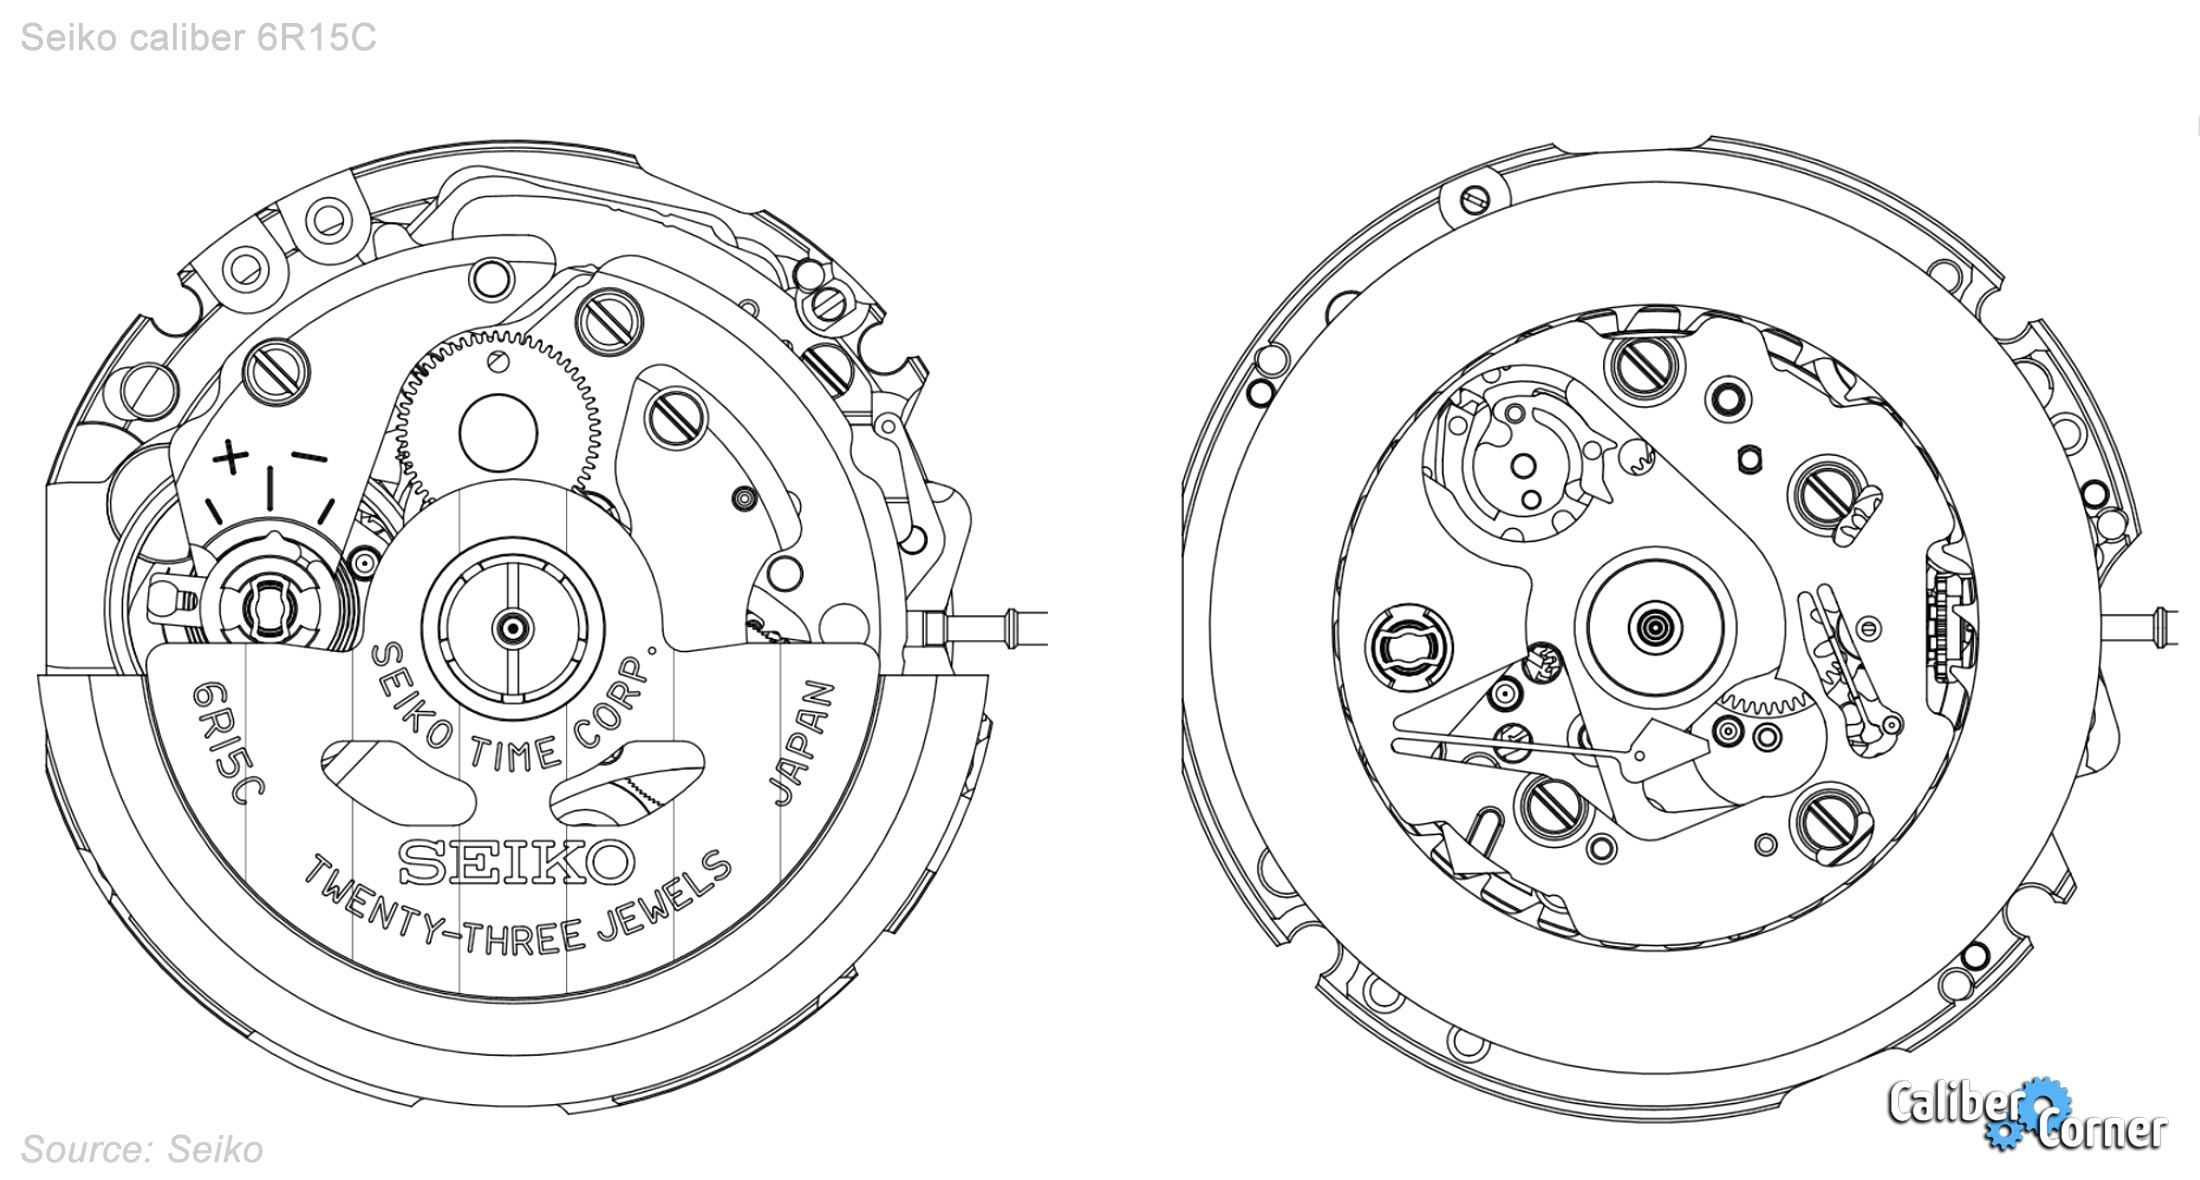 Seiko Caliber 6r15c Drawing